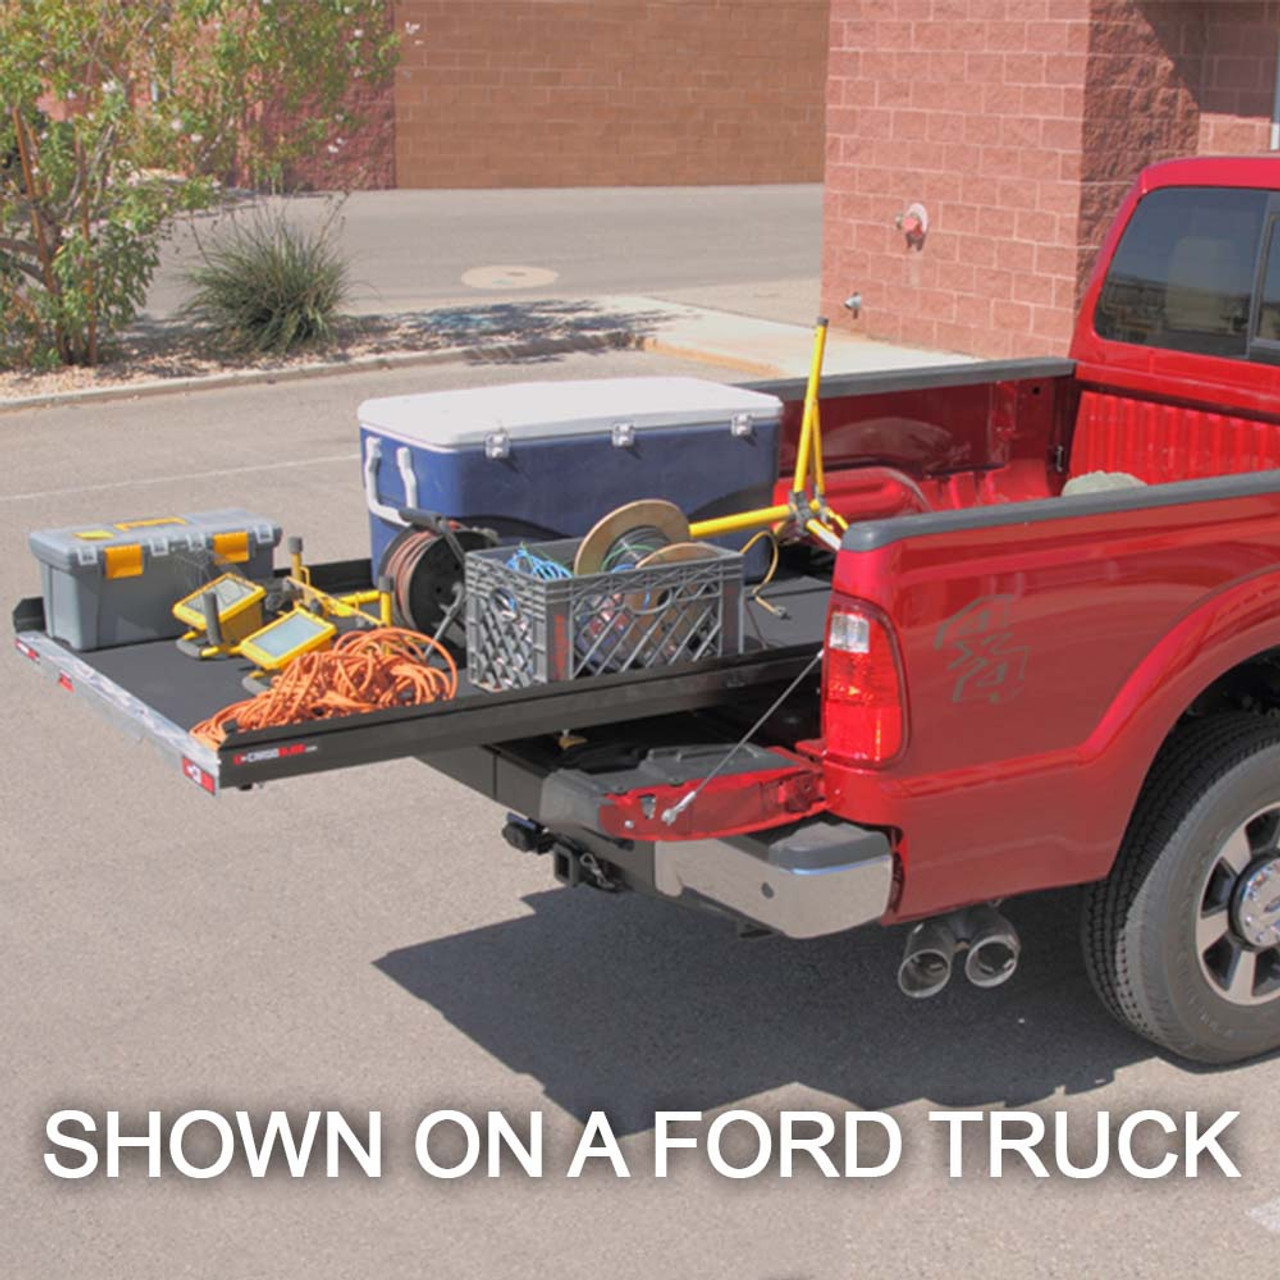 """Cargo-Glide CG1000 Tahoe Steel Truck-Bed Slide and Extender, 1000 lb Capacity, 65-75% Extension, 4"""" Side Rails, 3.875"""" Deck Height, Includes Installation Kit"""